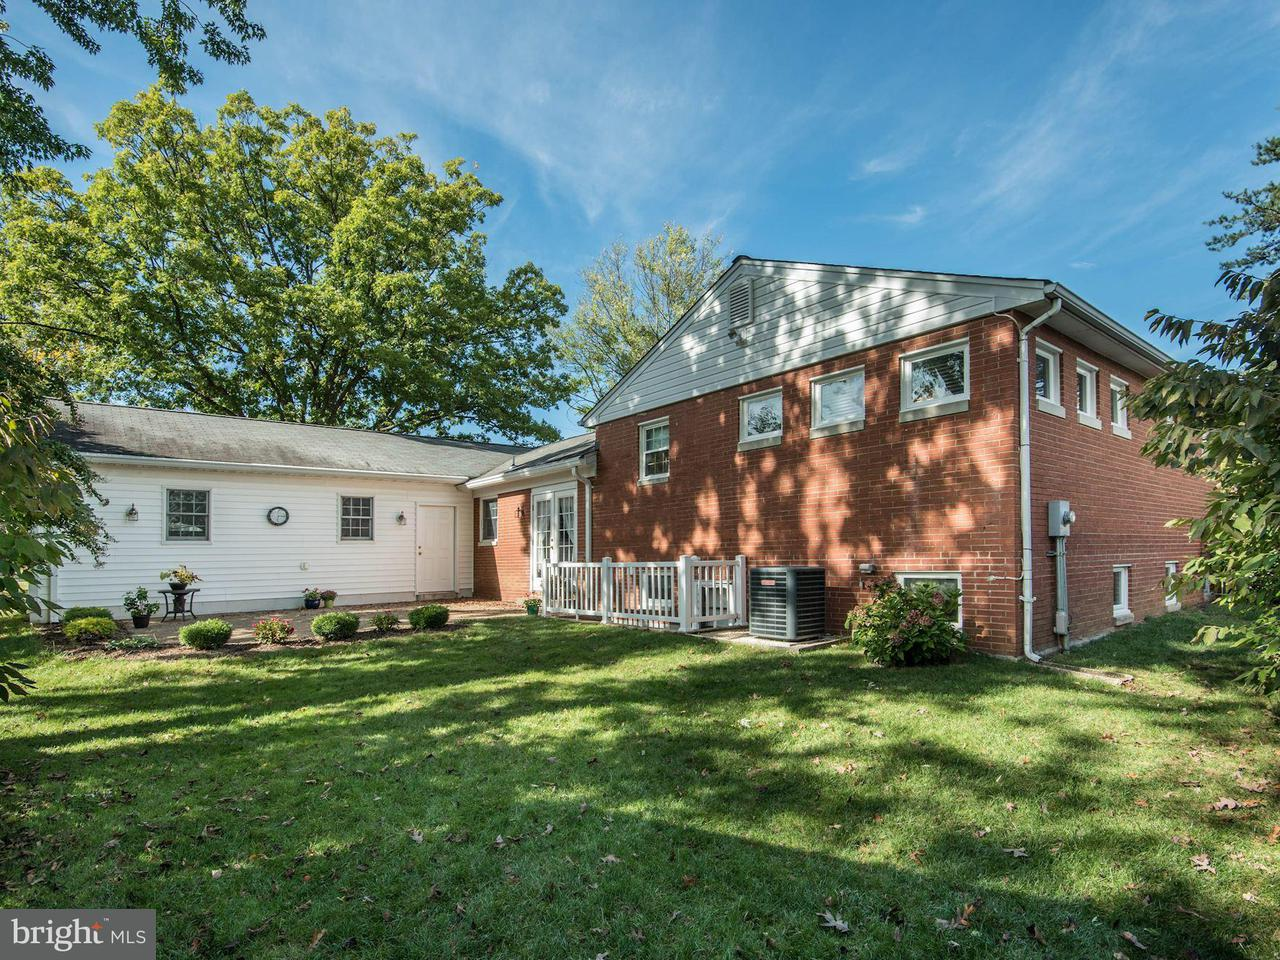 Additional photo for property listing at 10917 Woodhaven Drive 10917 Woodhaven Drive Fairfax, Βιρτζινια 22030 Ηνωμενεσ Πολιτειεσ